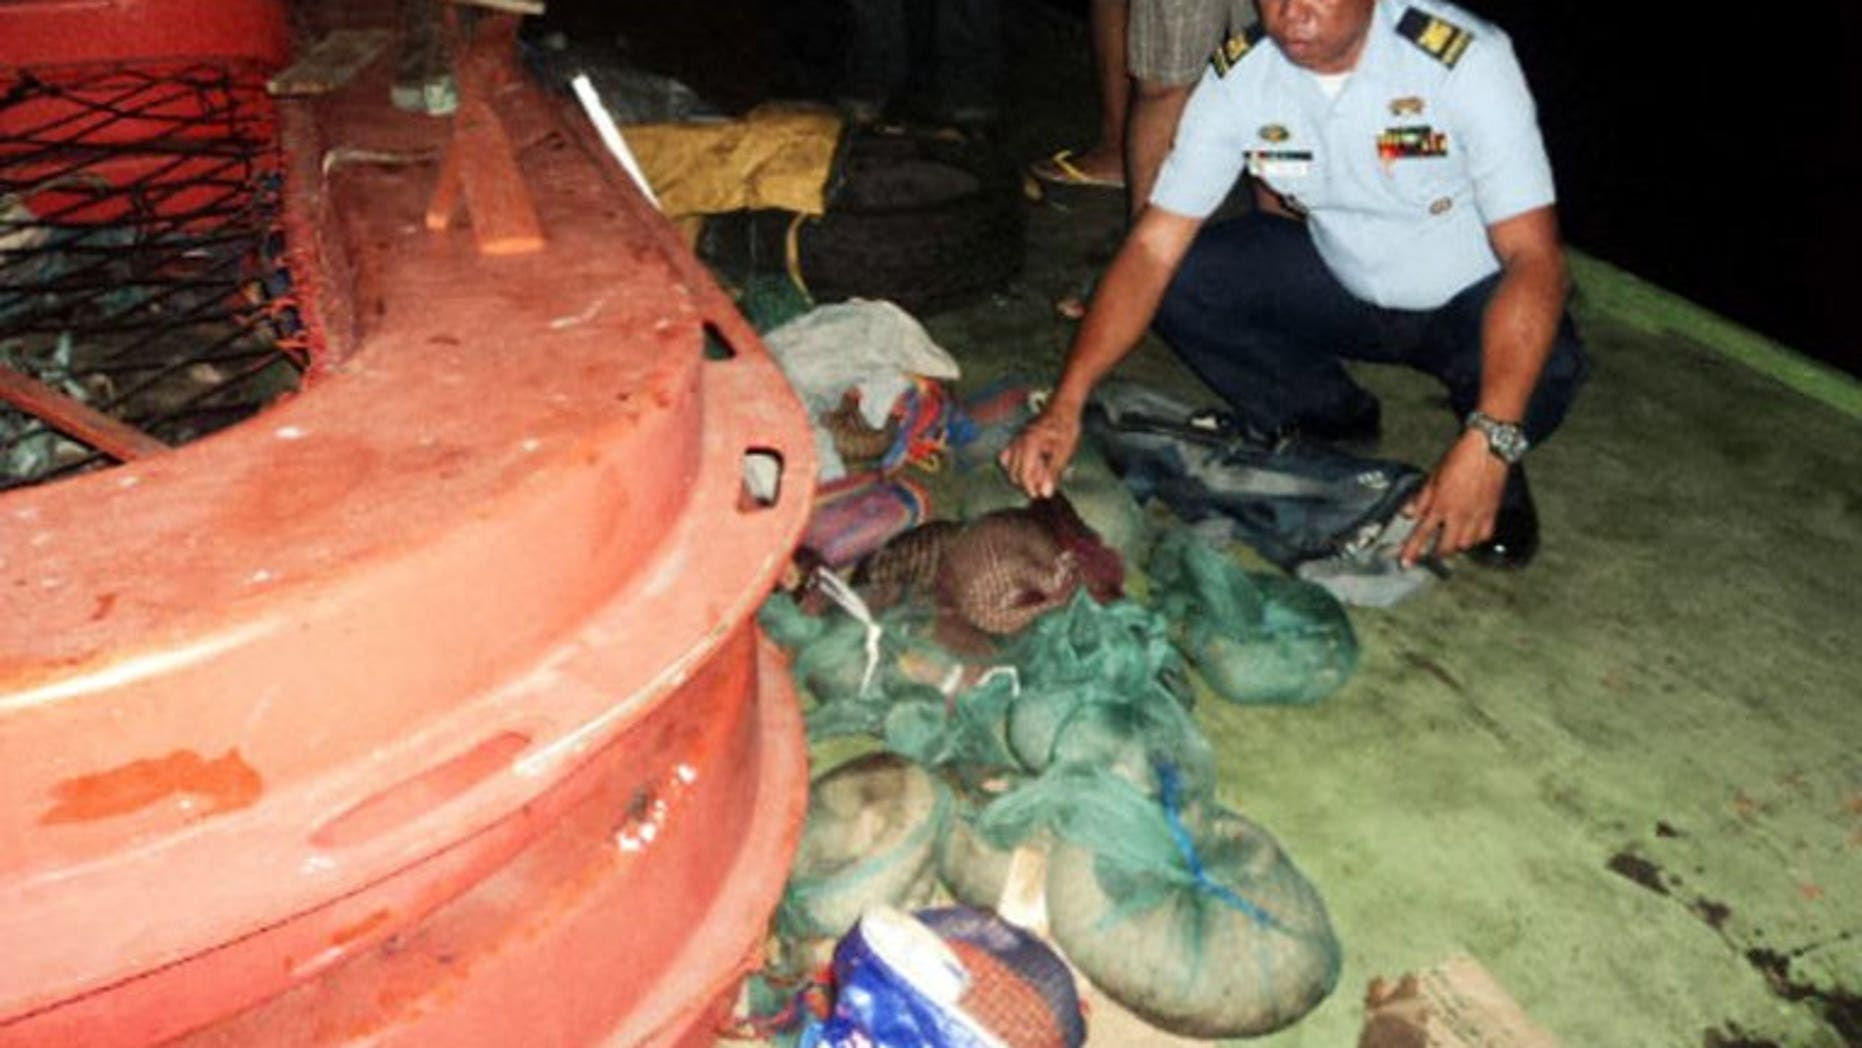 A Philippine Coast Guard inspects pangolins wrapped in plastic bags that were found hidden on a boat in Coron, on April 23, 2013. Vietnamese customs officials say they have found more than six tonnes of live protected pangolins inside a shipping container sent from Indonesia.